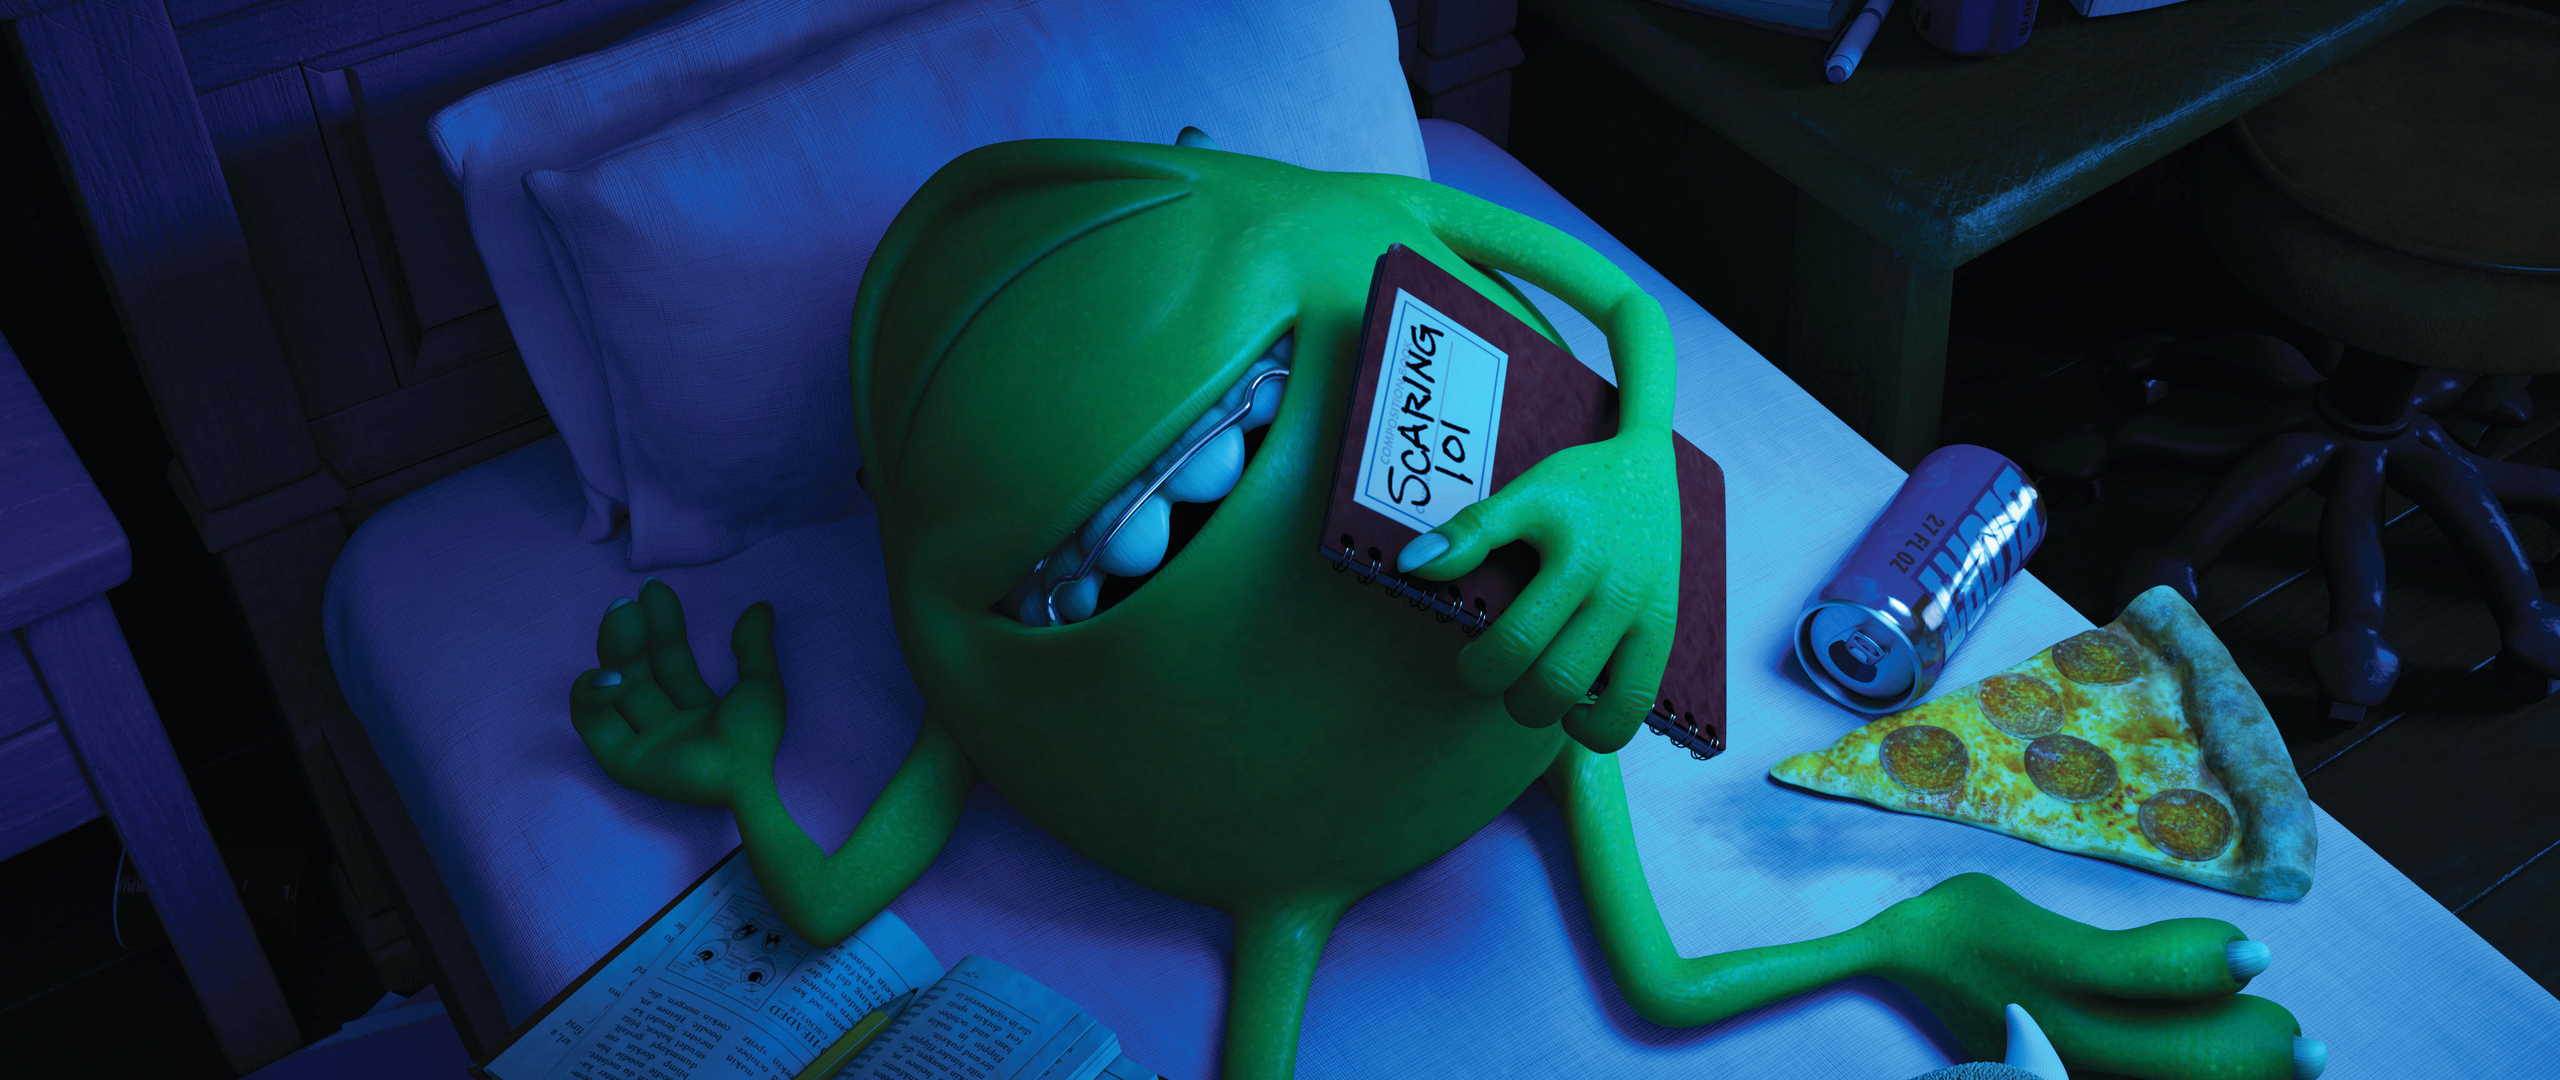 monsters-university-mike-wazowski-4k-tk.jpg